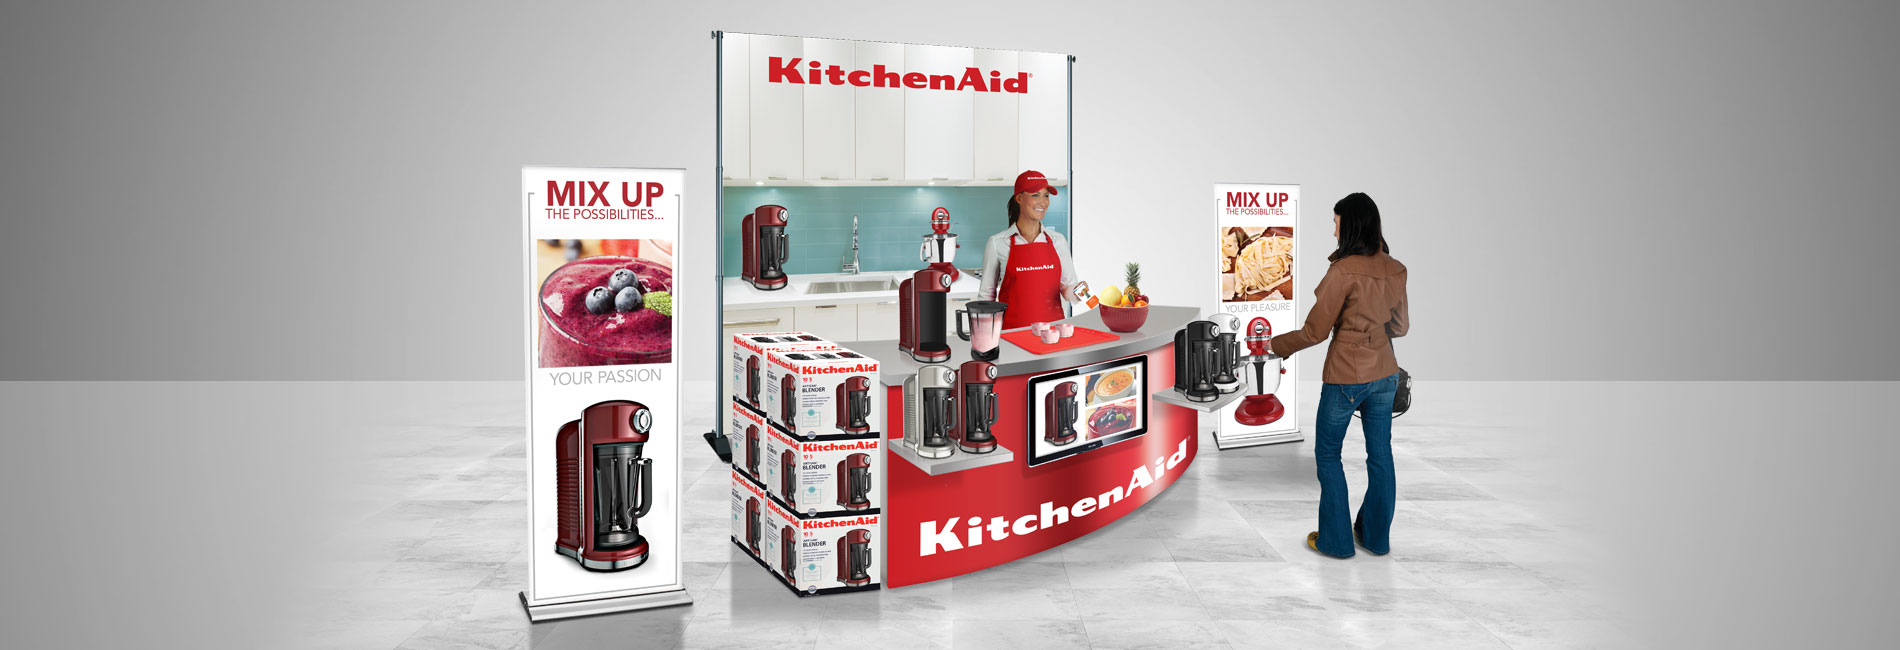 kitchen aid demo concept rendering